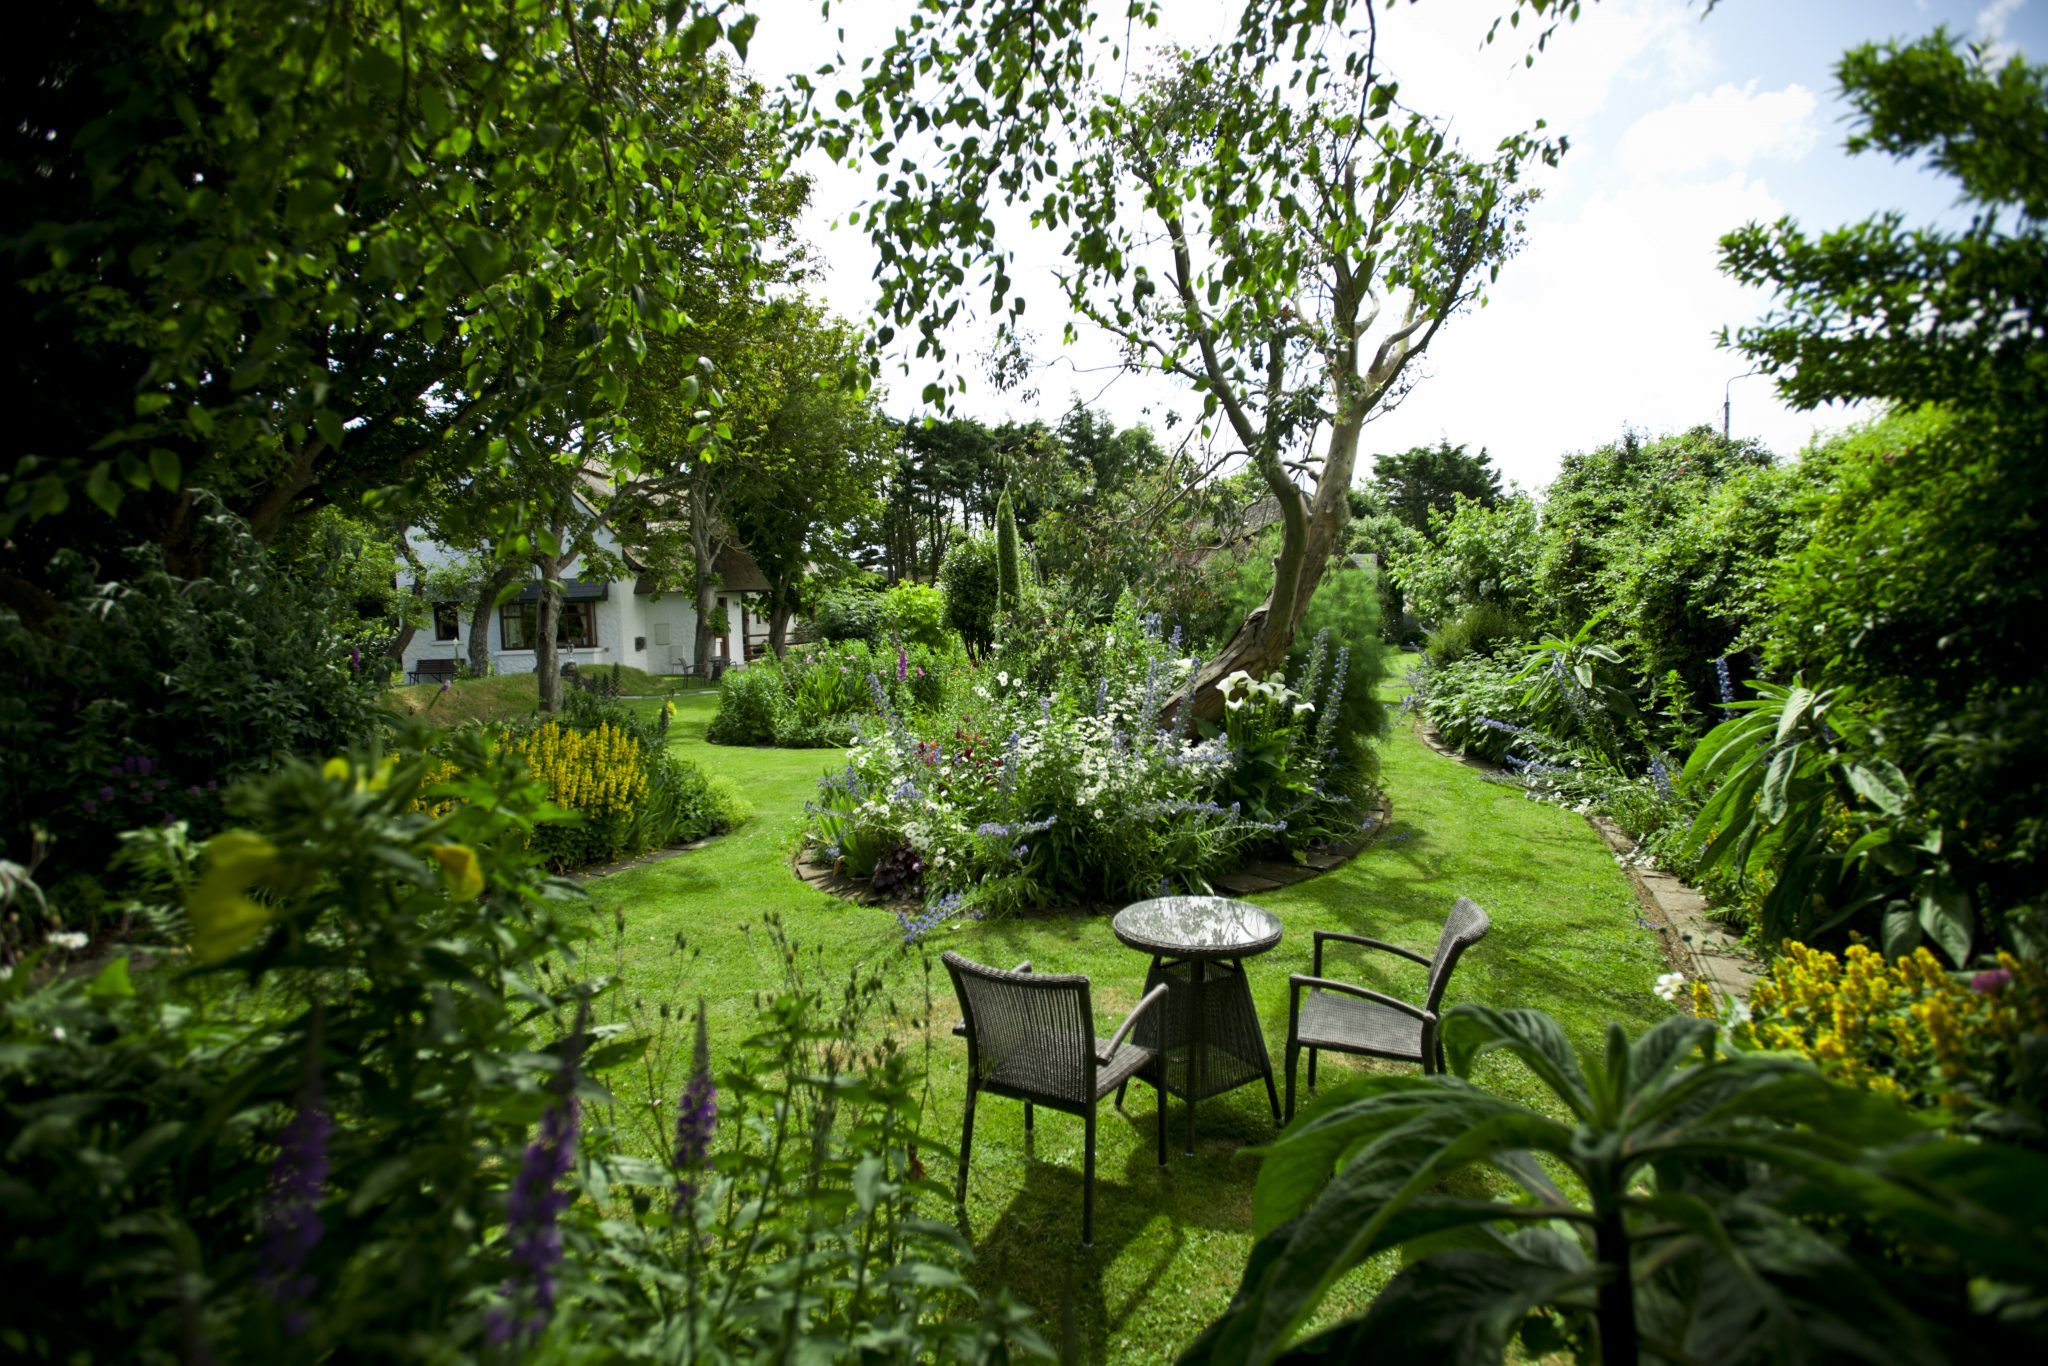 7. The Cottages Ireland ~ Picturesque Organic Cottage Gardens